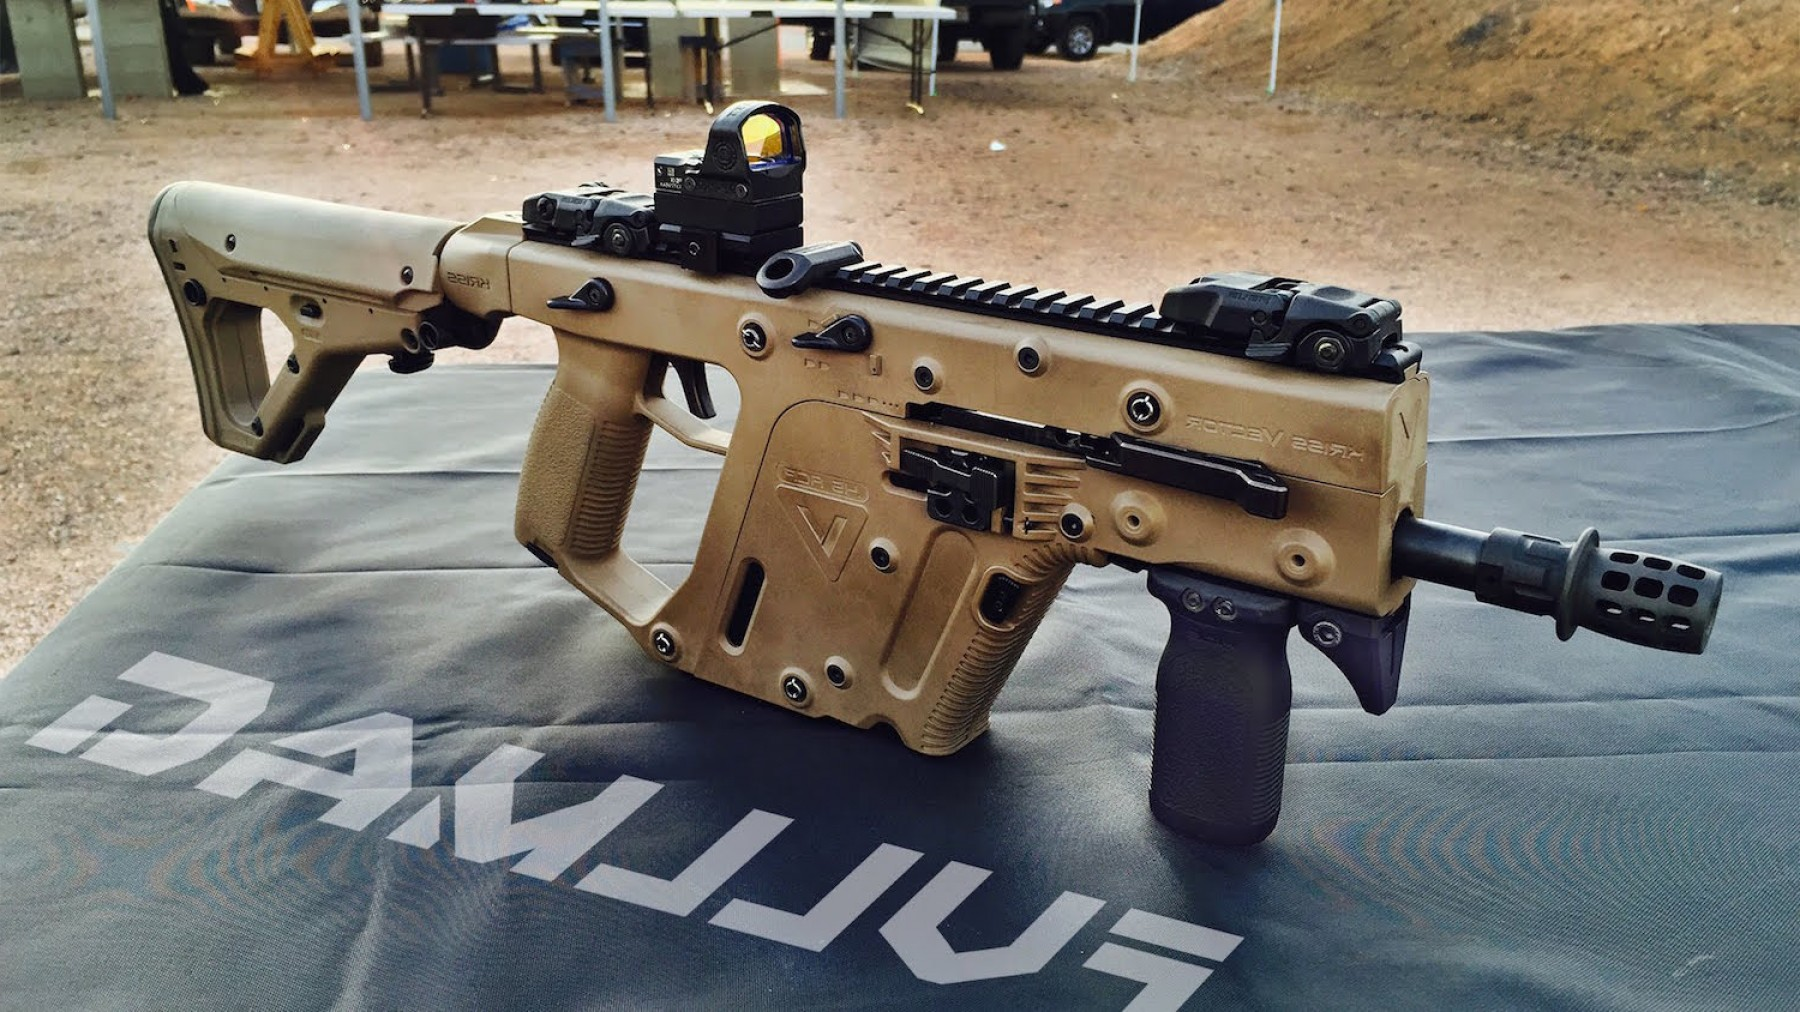 New Kriss Vector: The Head Turning Innovation Behind The Kriss Vector